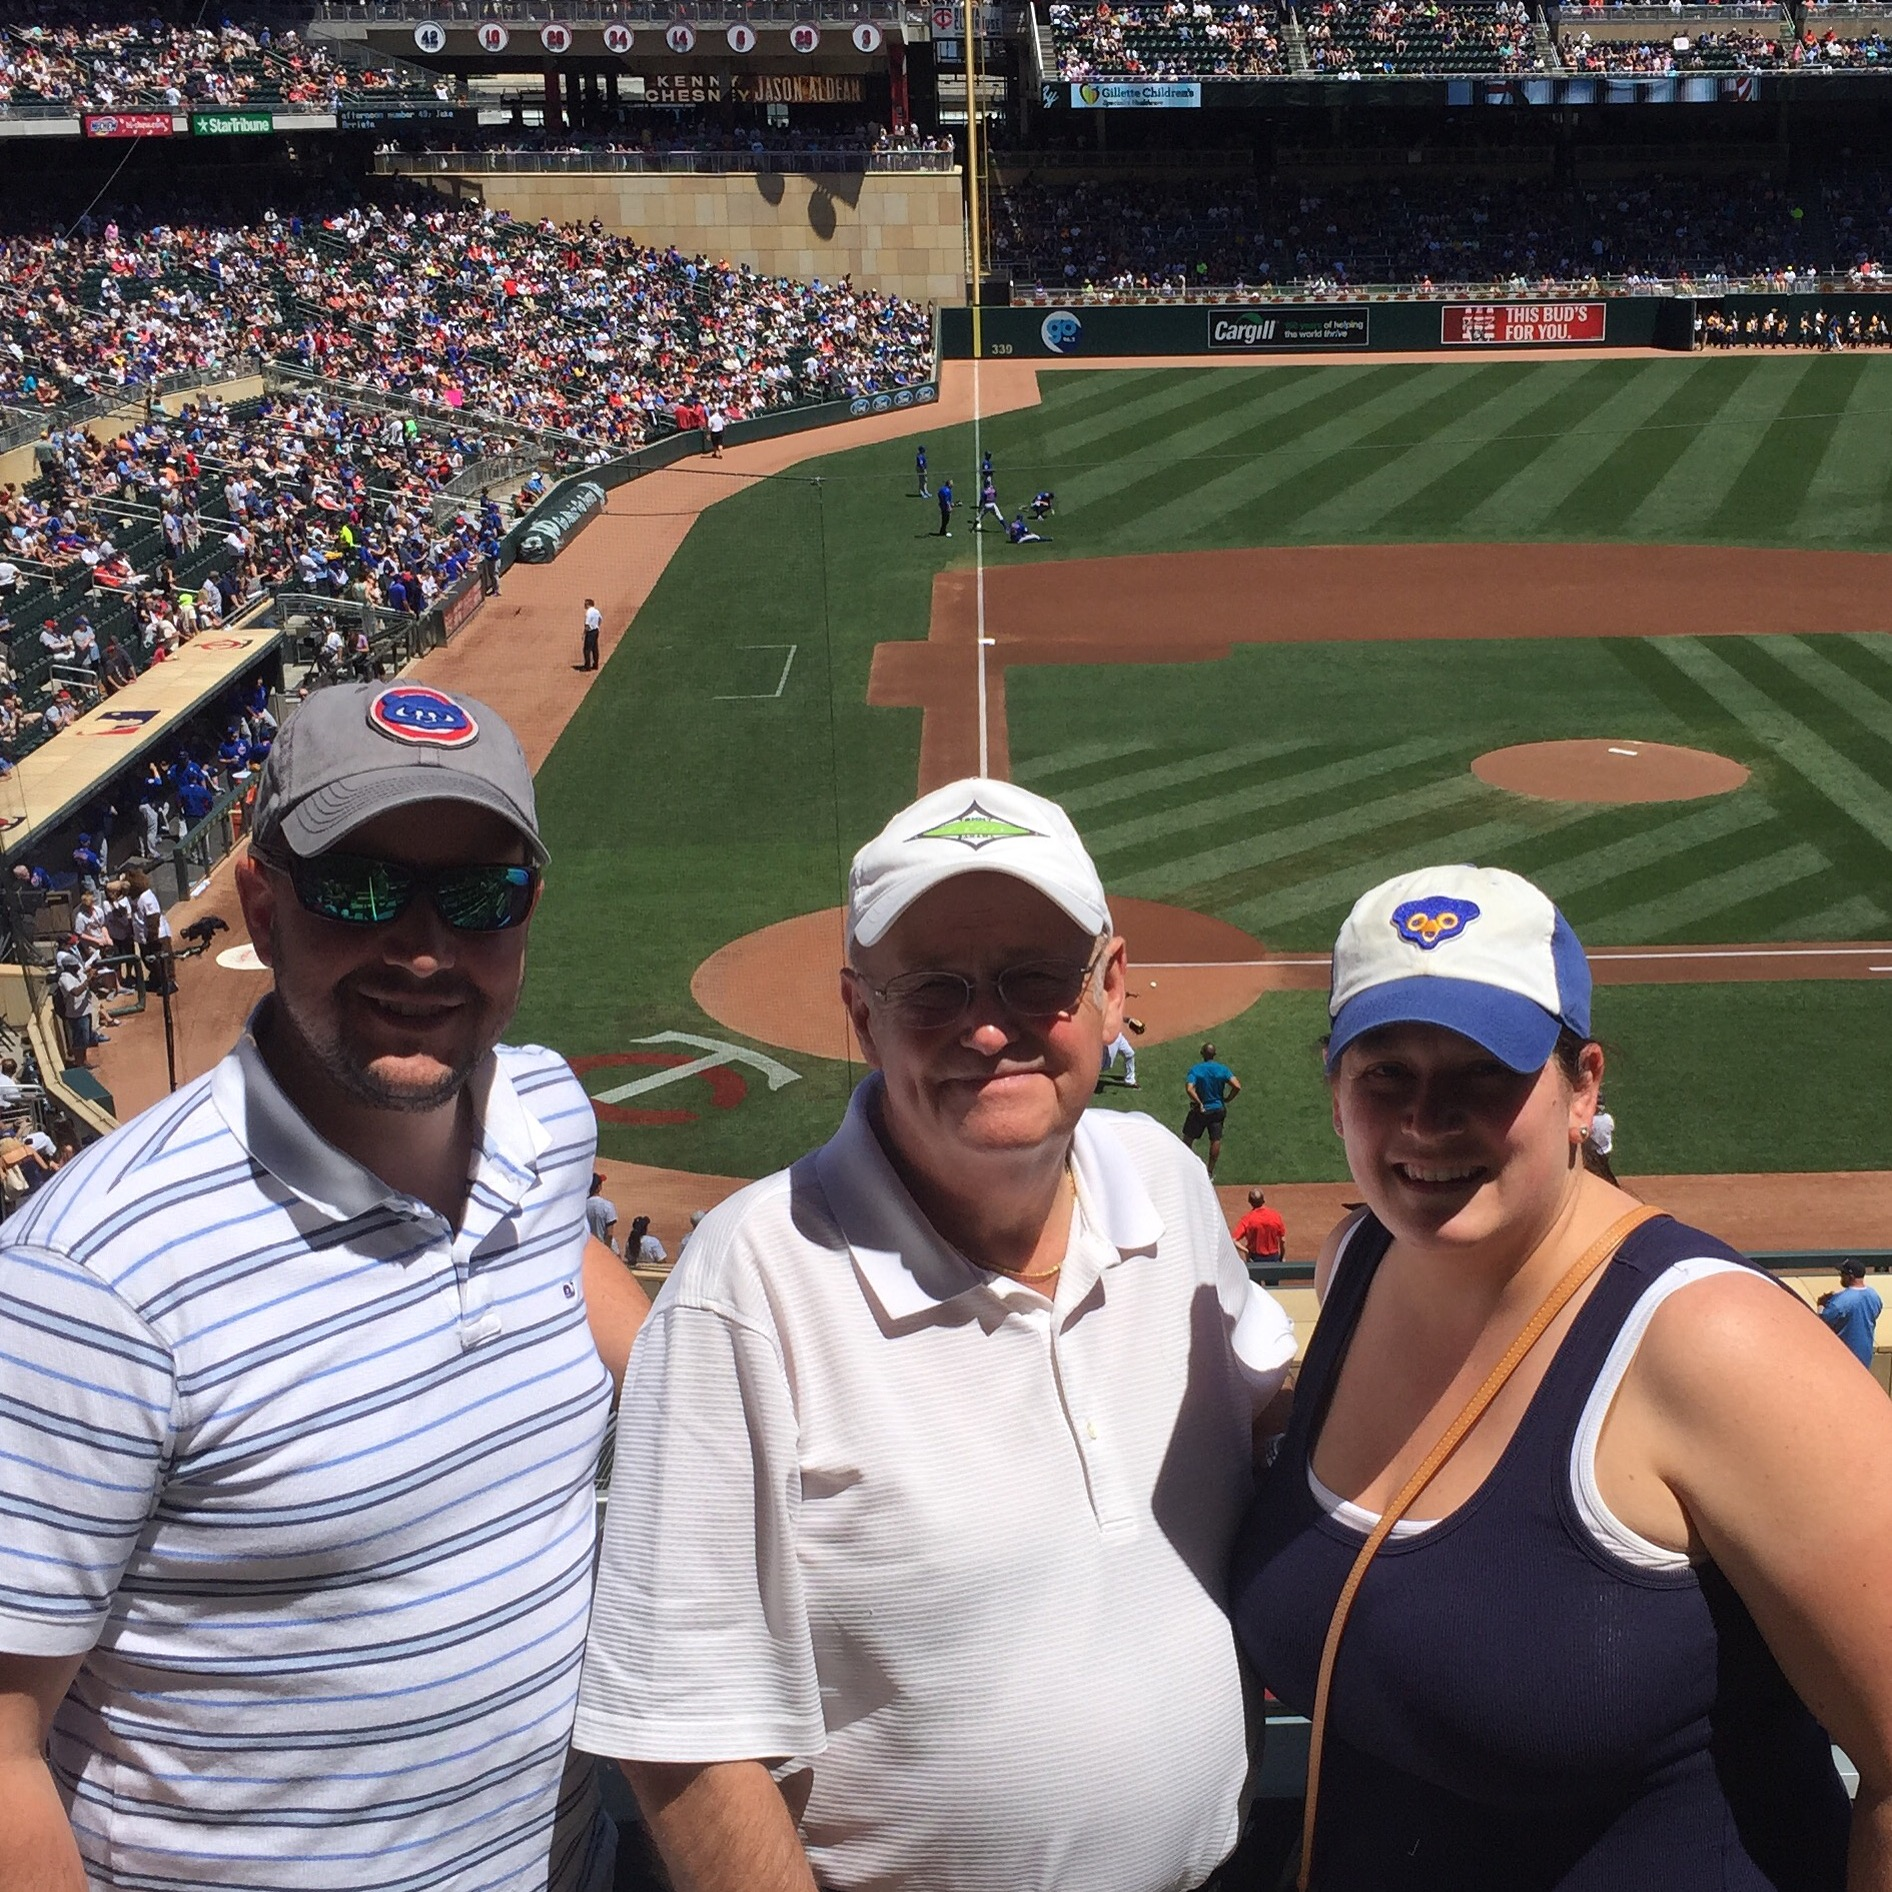 Twins vs. Cubs baseball rivalry